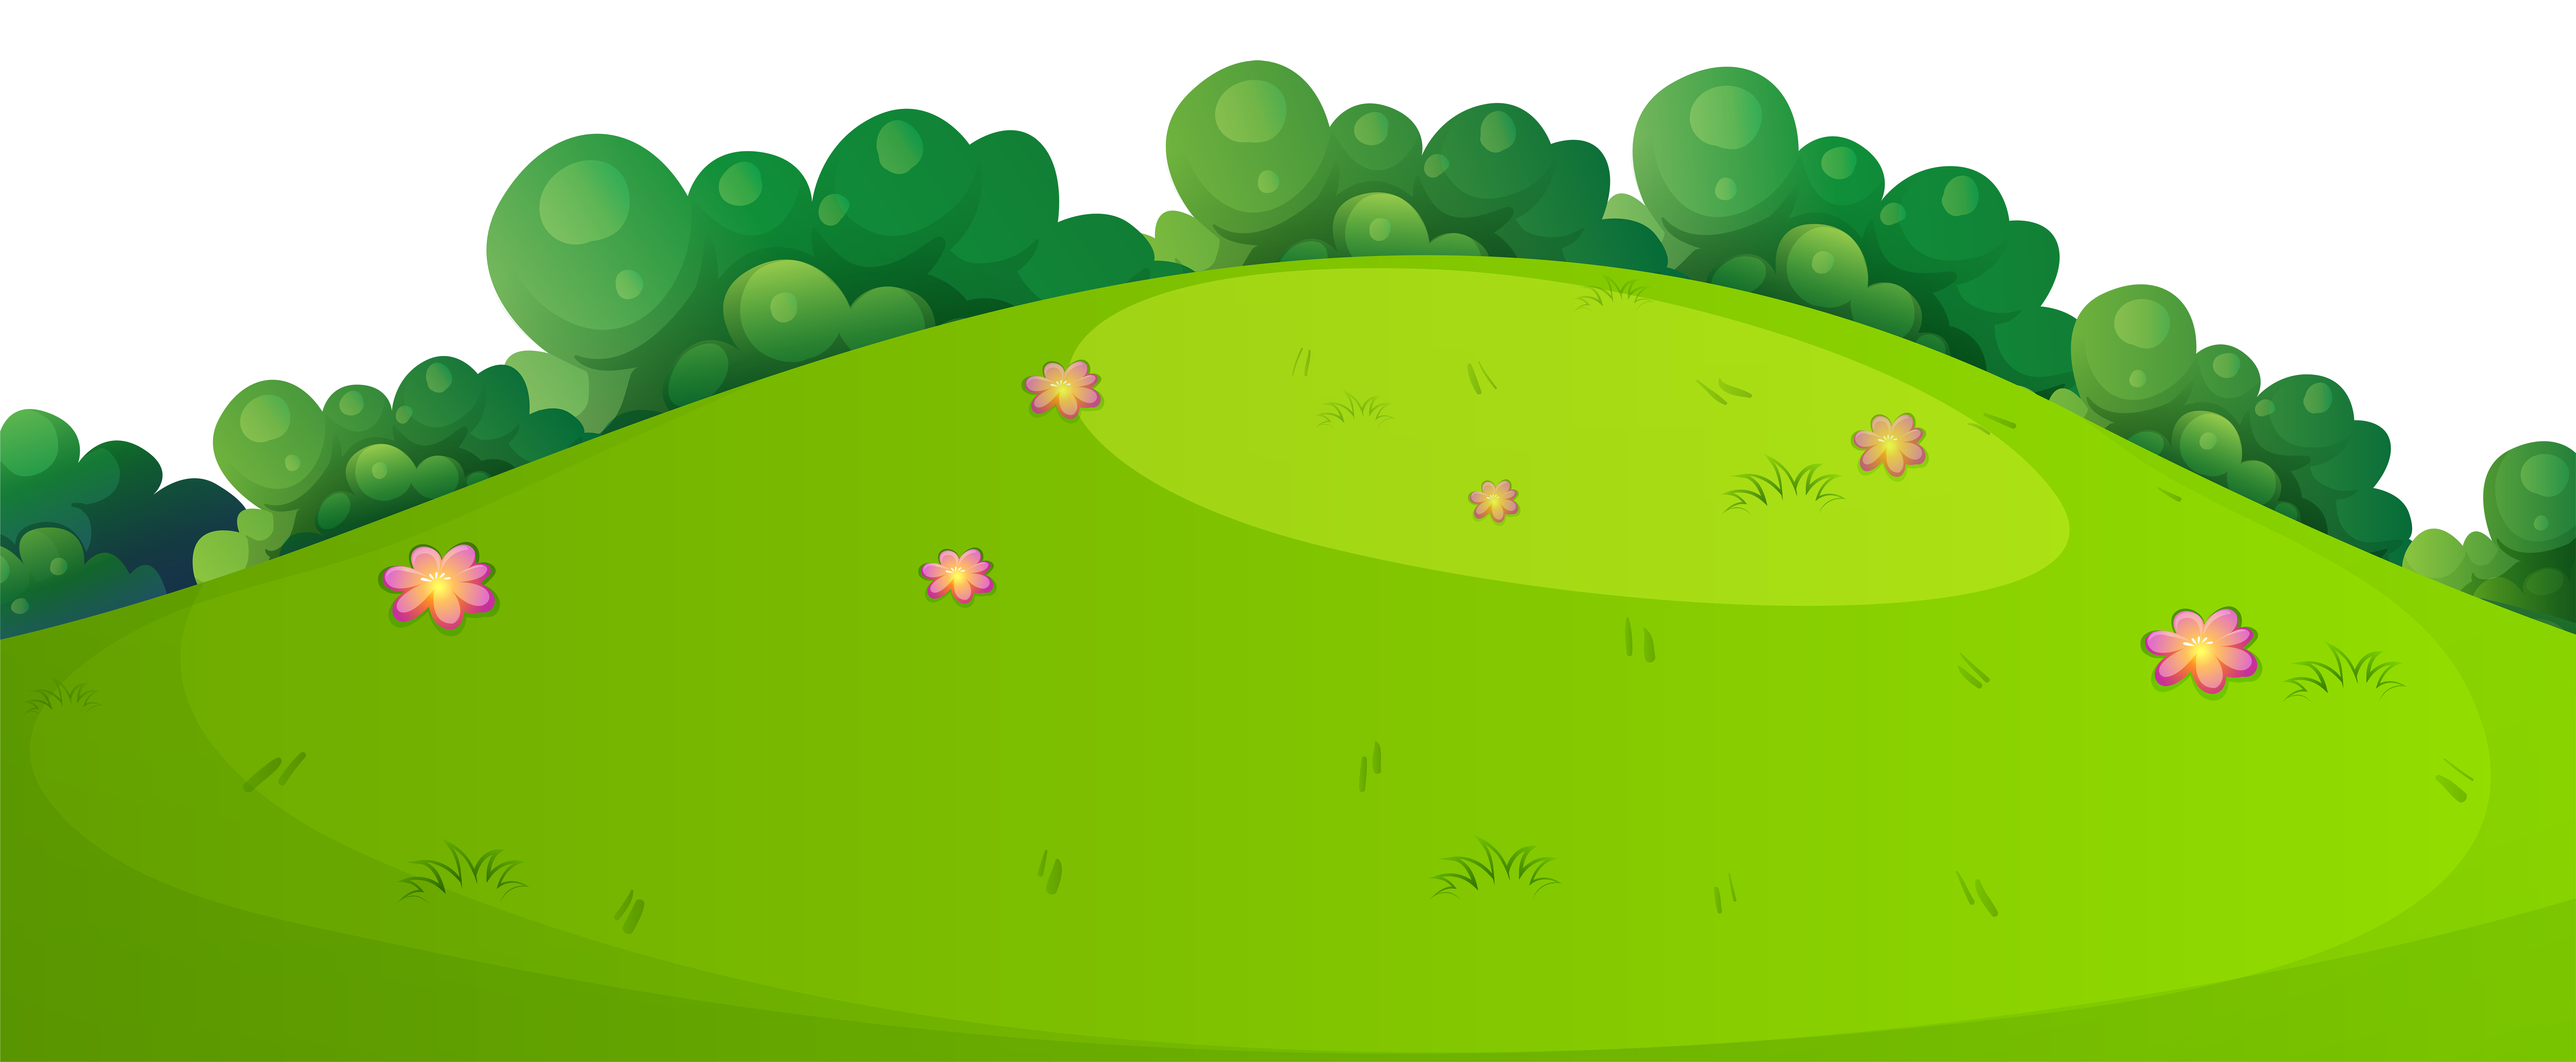 Hill clipart medow. Meadow grass ground png